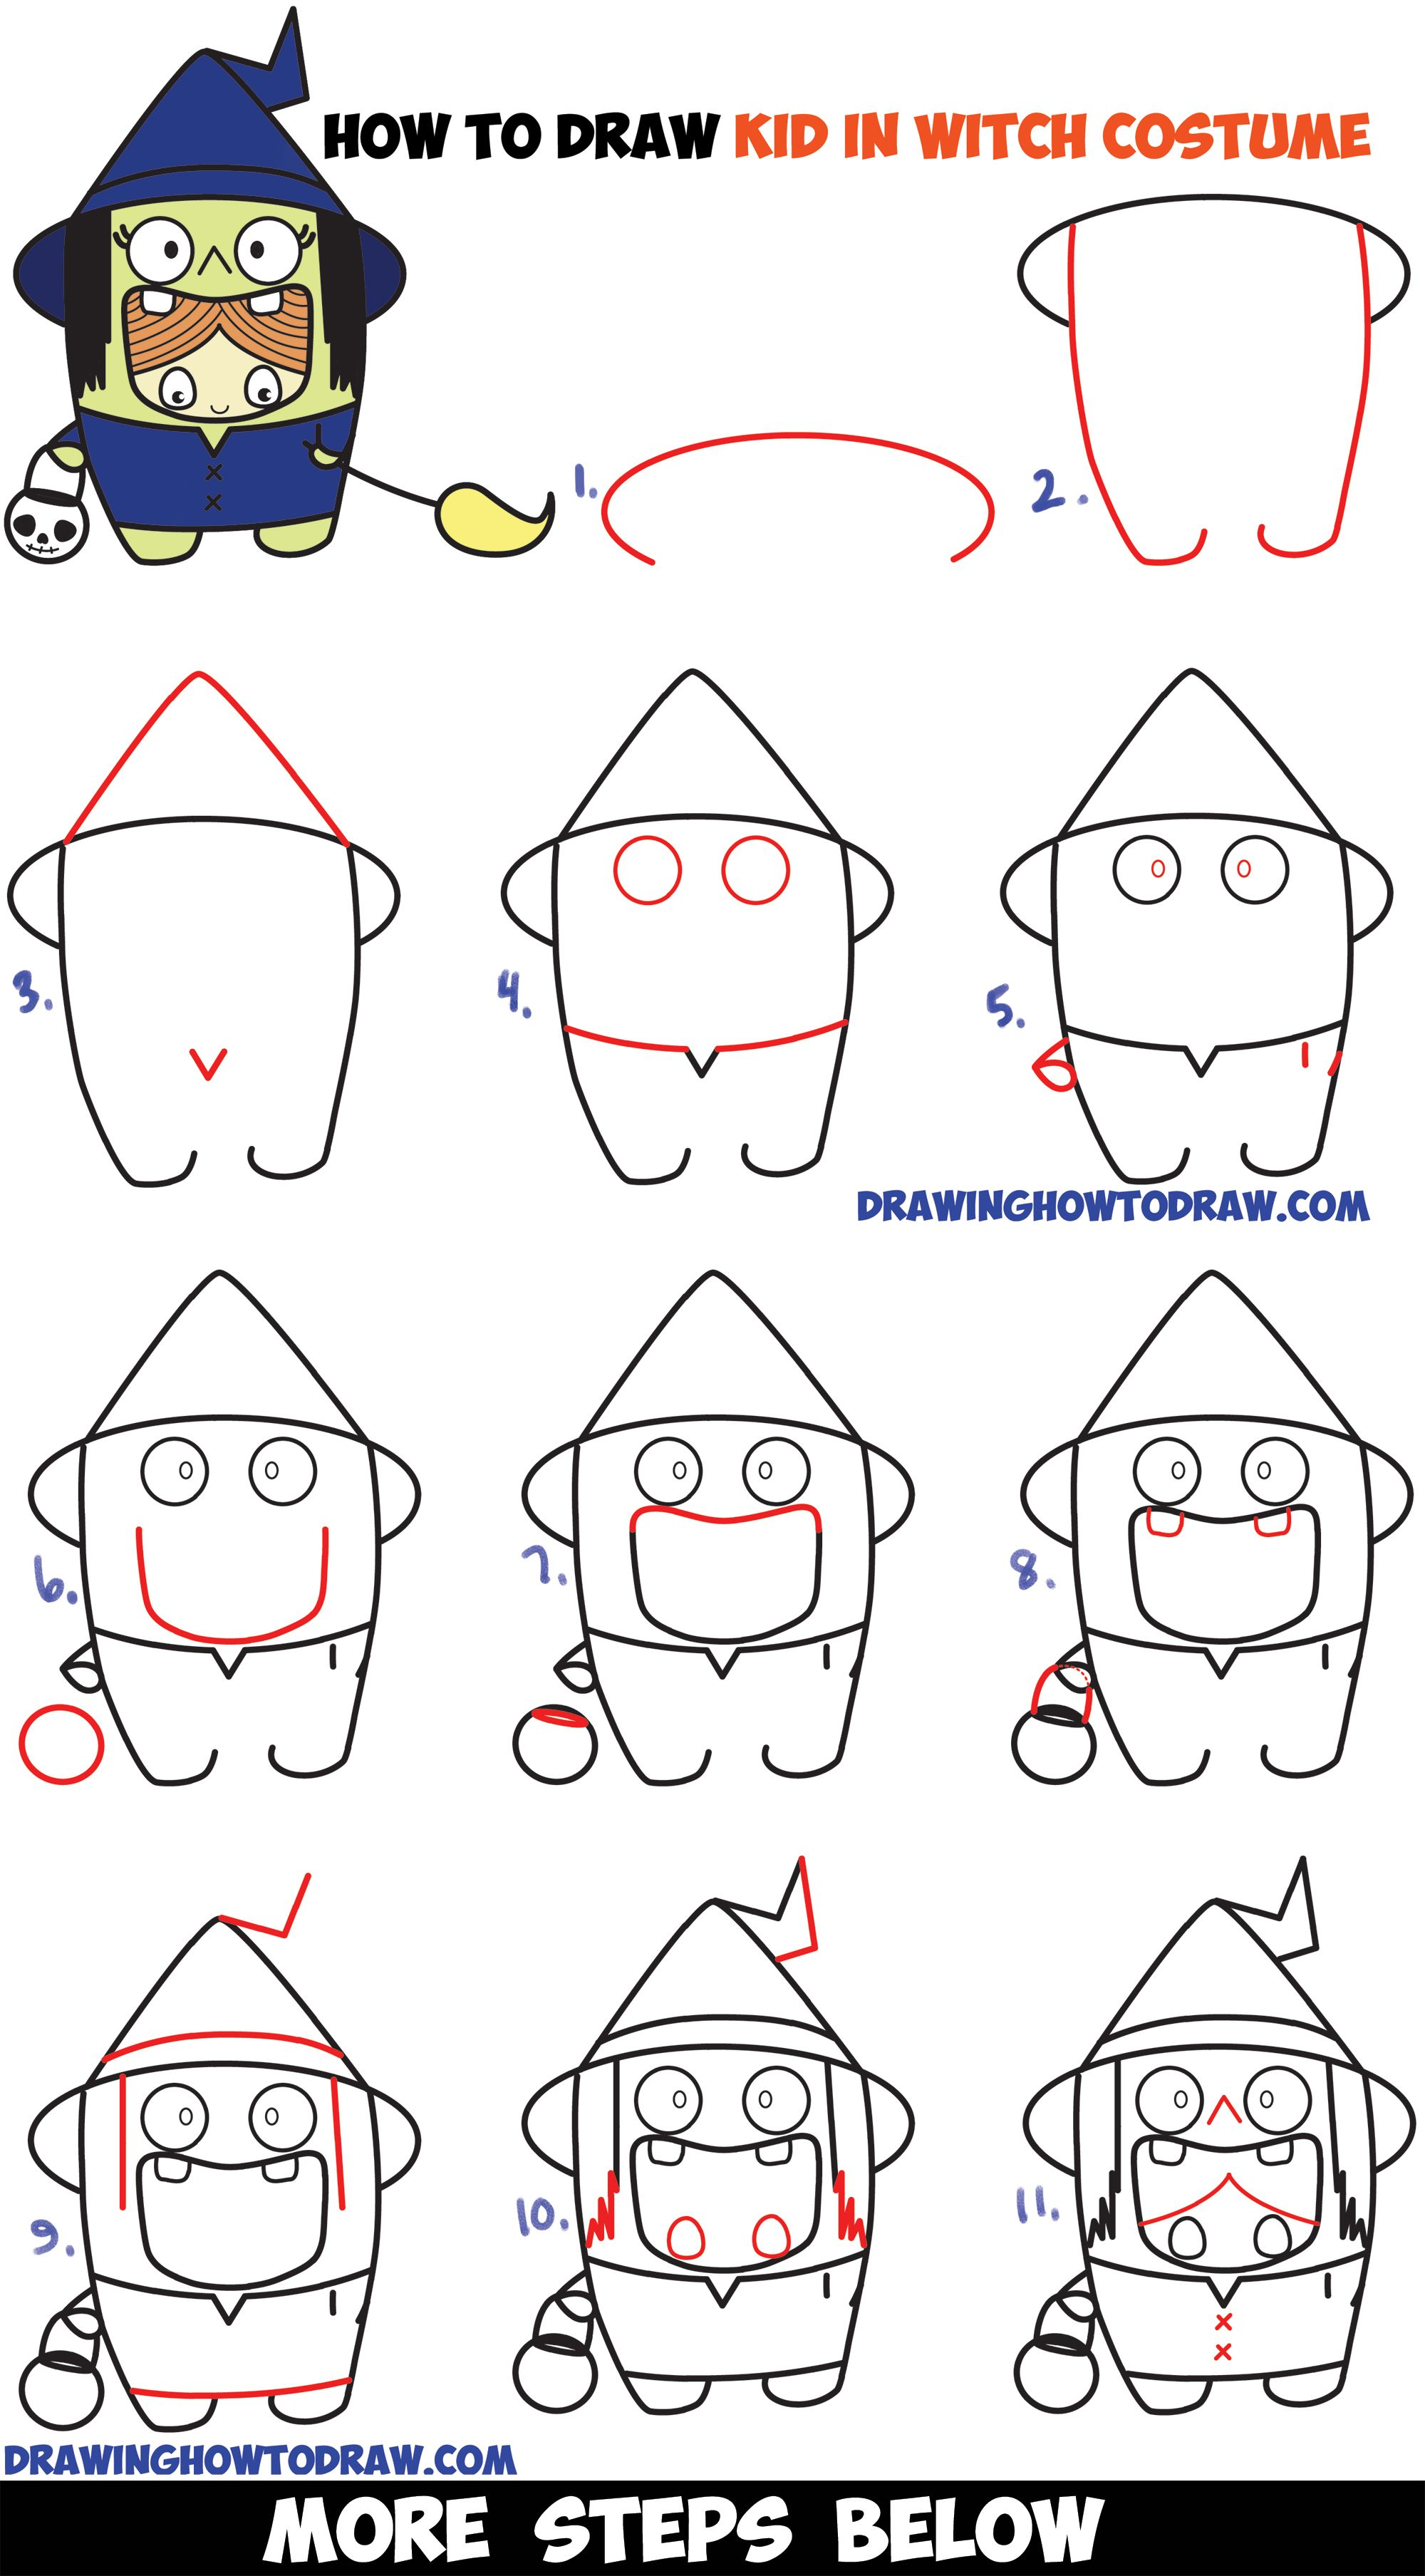 How To Draw A Kid In A Halloween Witch Costume Cute Kawaii Easy